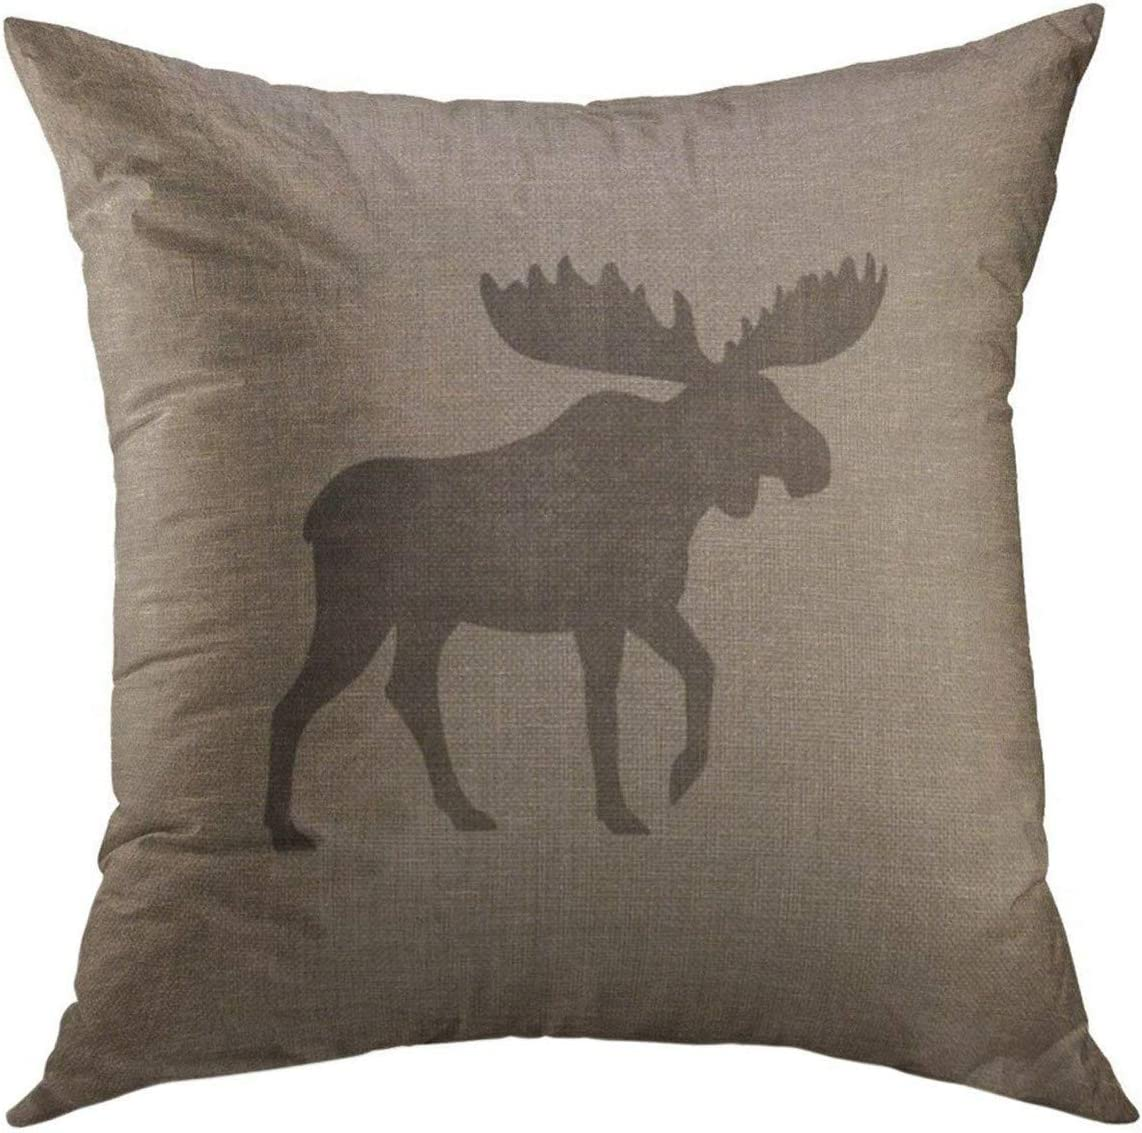 Mugod Decorative Throw Pillow Cover for Couch Sofa,Rustic Moose Silhouette Burlap Cabin Home Decor Pillow Case 18x18 Inch